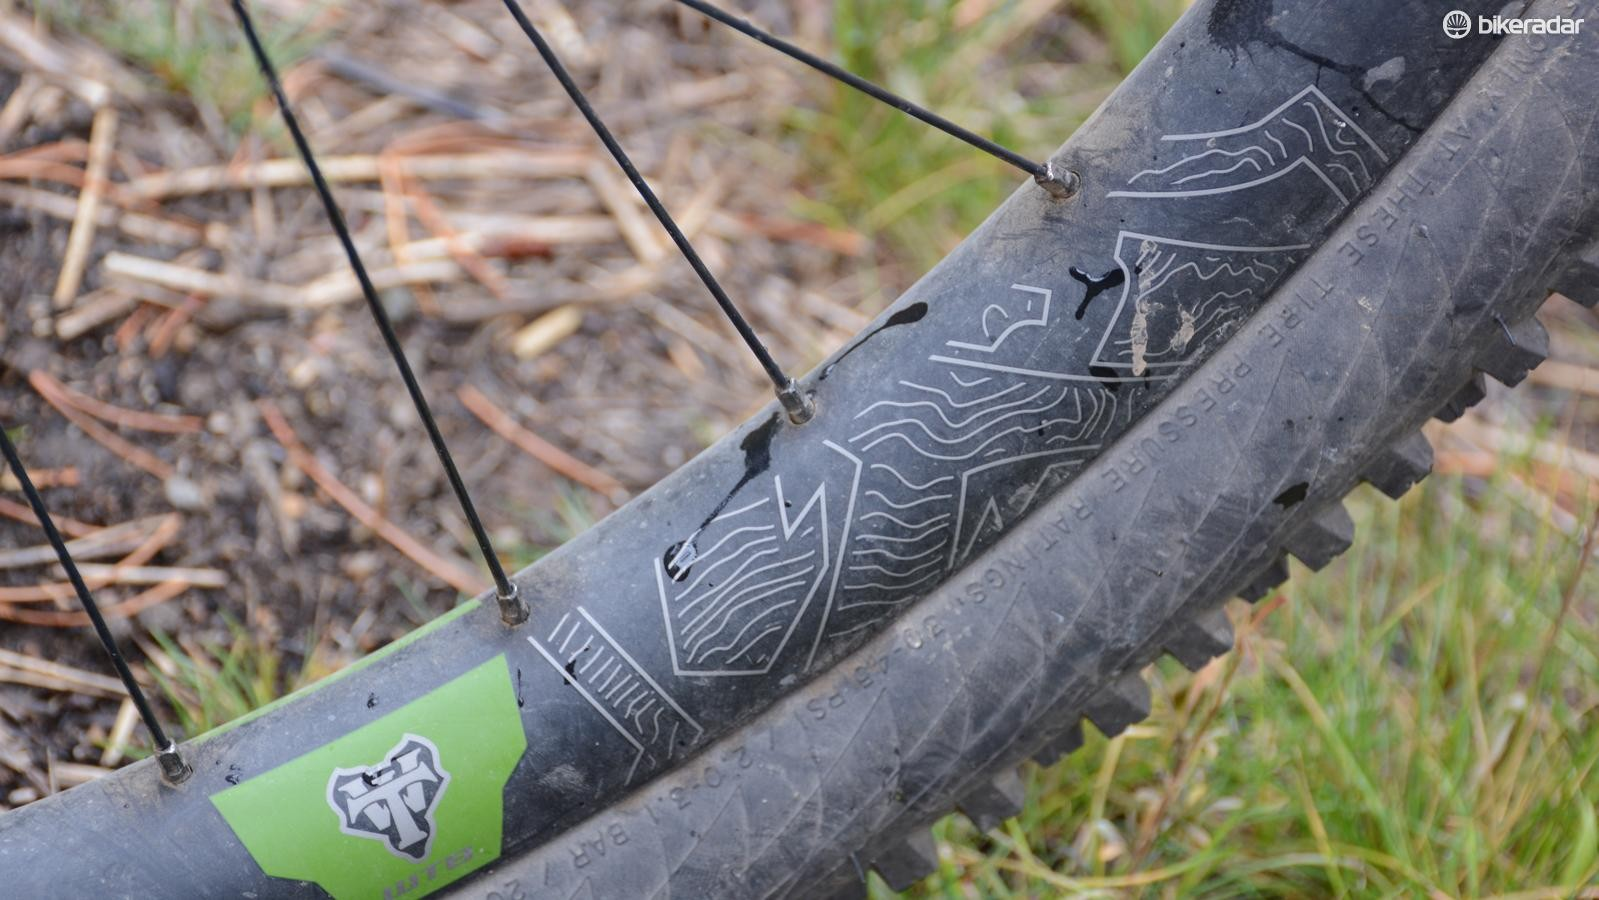 31mm wide WTB Ci31 carbon rims were an odd spec, but one that I grew to appreciate